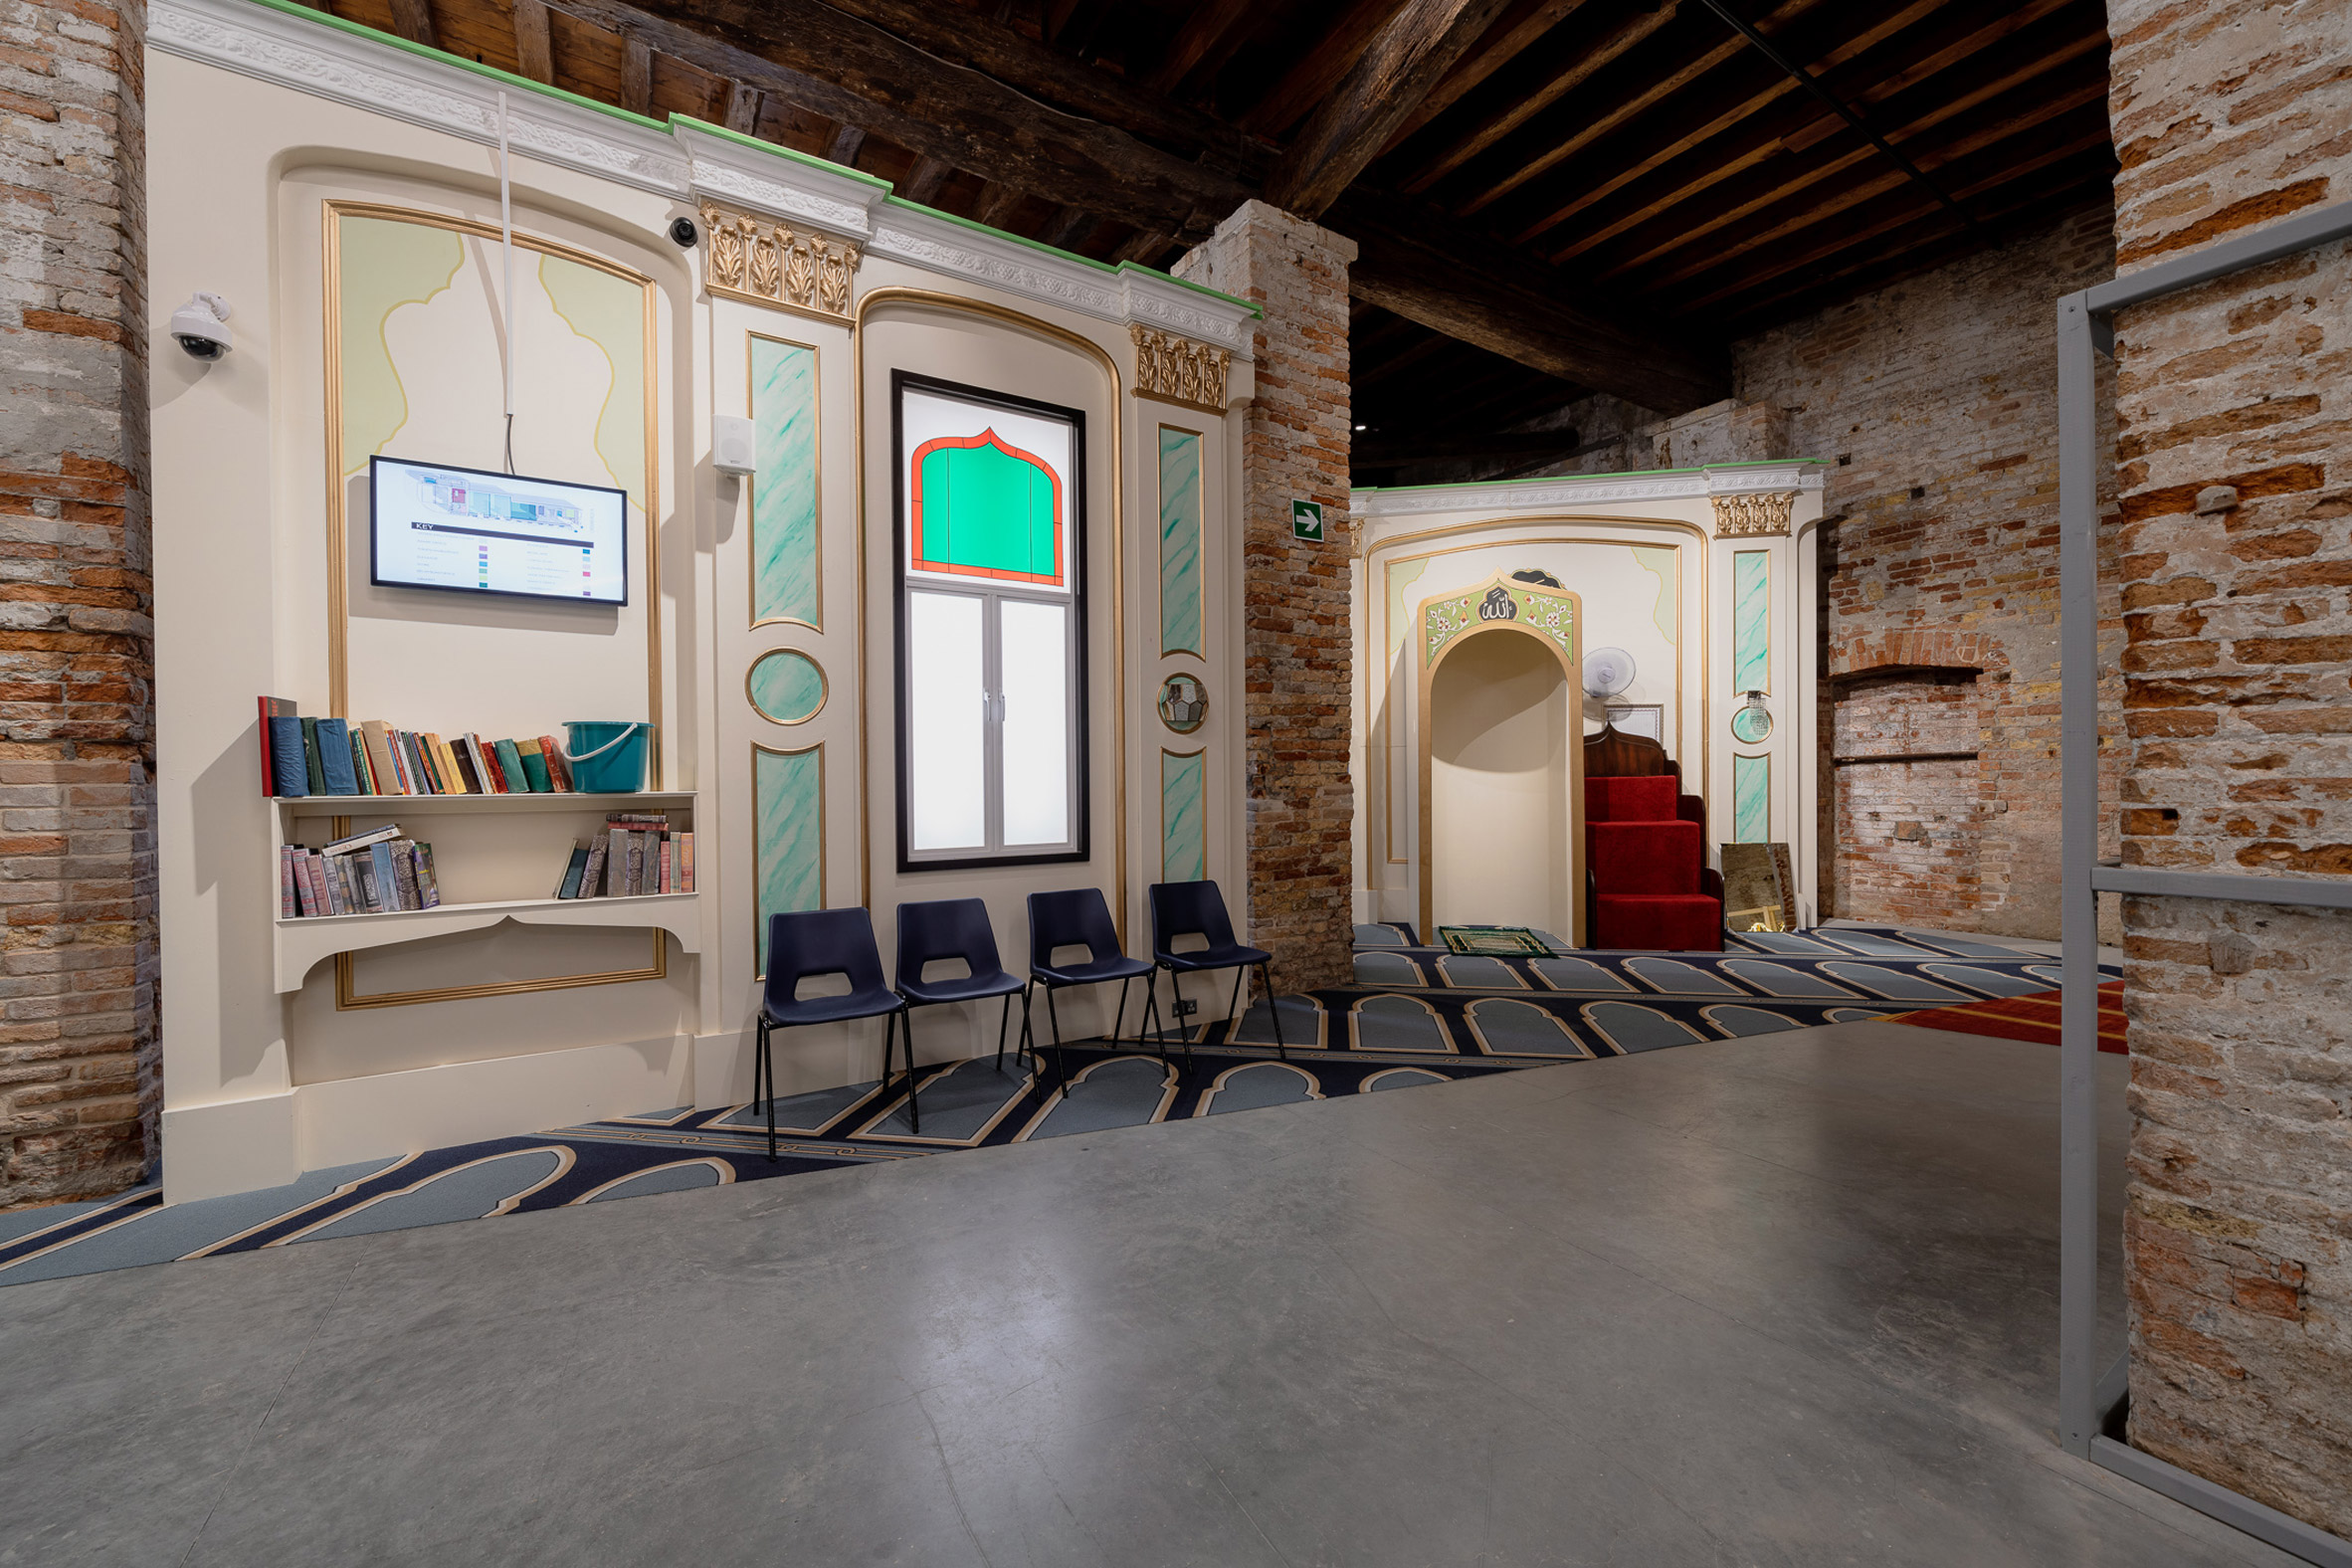 Books and chairs line the walls of the installation